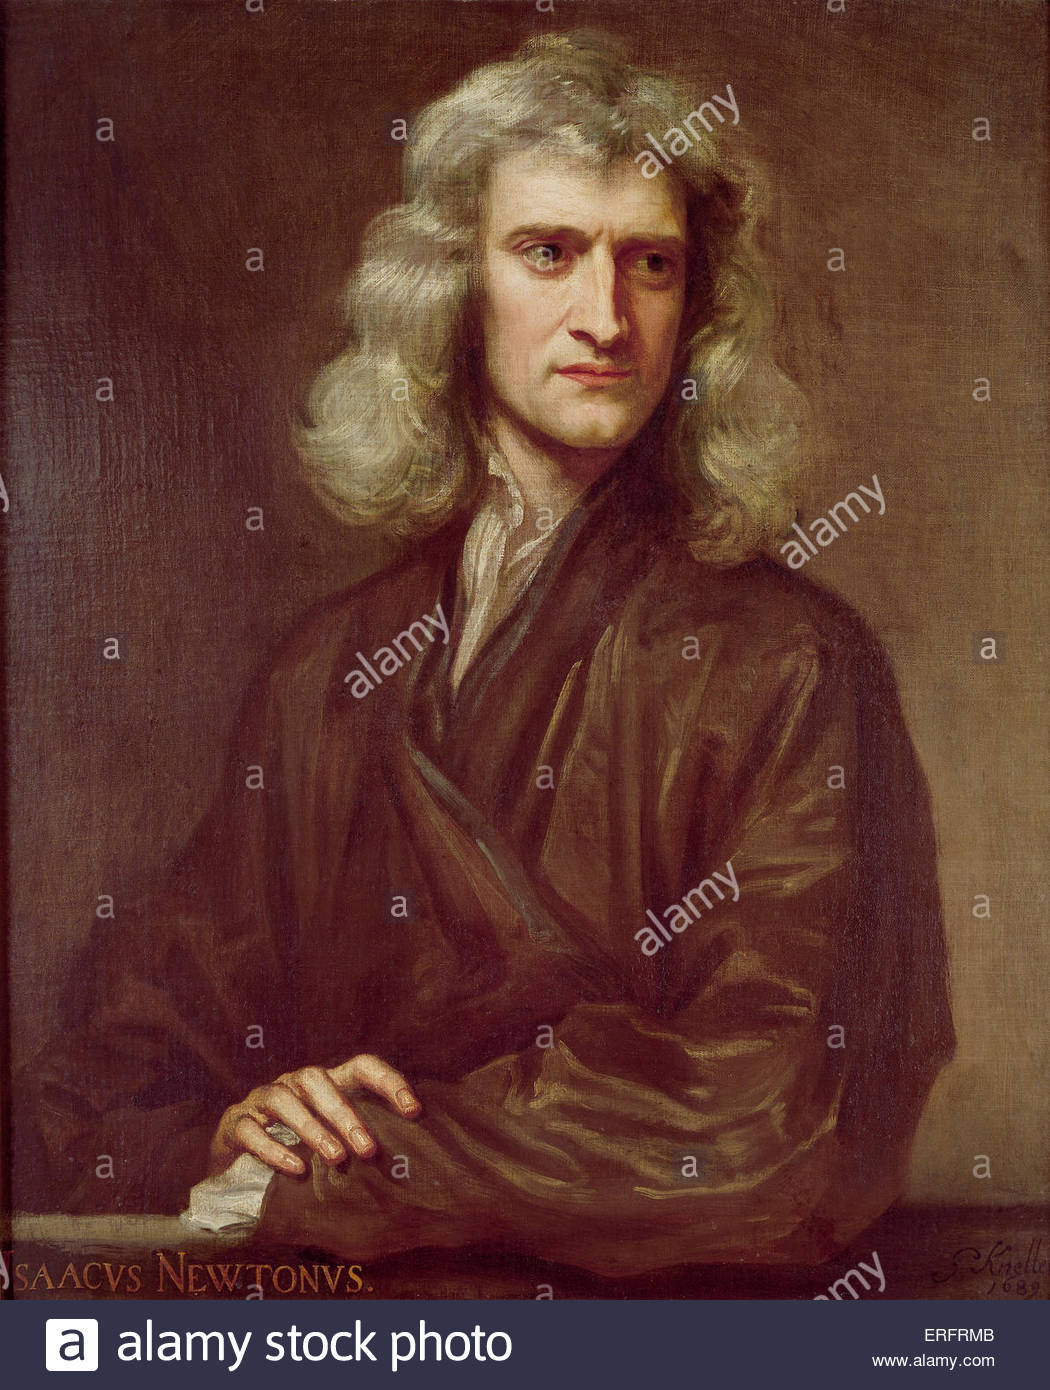 Sir Isaac Newton - painting by Sir Godfrey Kneller, 1689. Courtesy of Uckfield House, Uckfield. IN, English physicist, - Stock Image